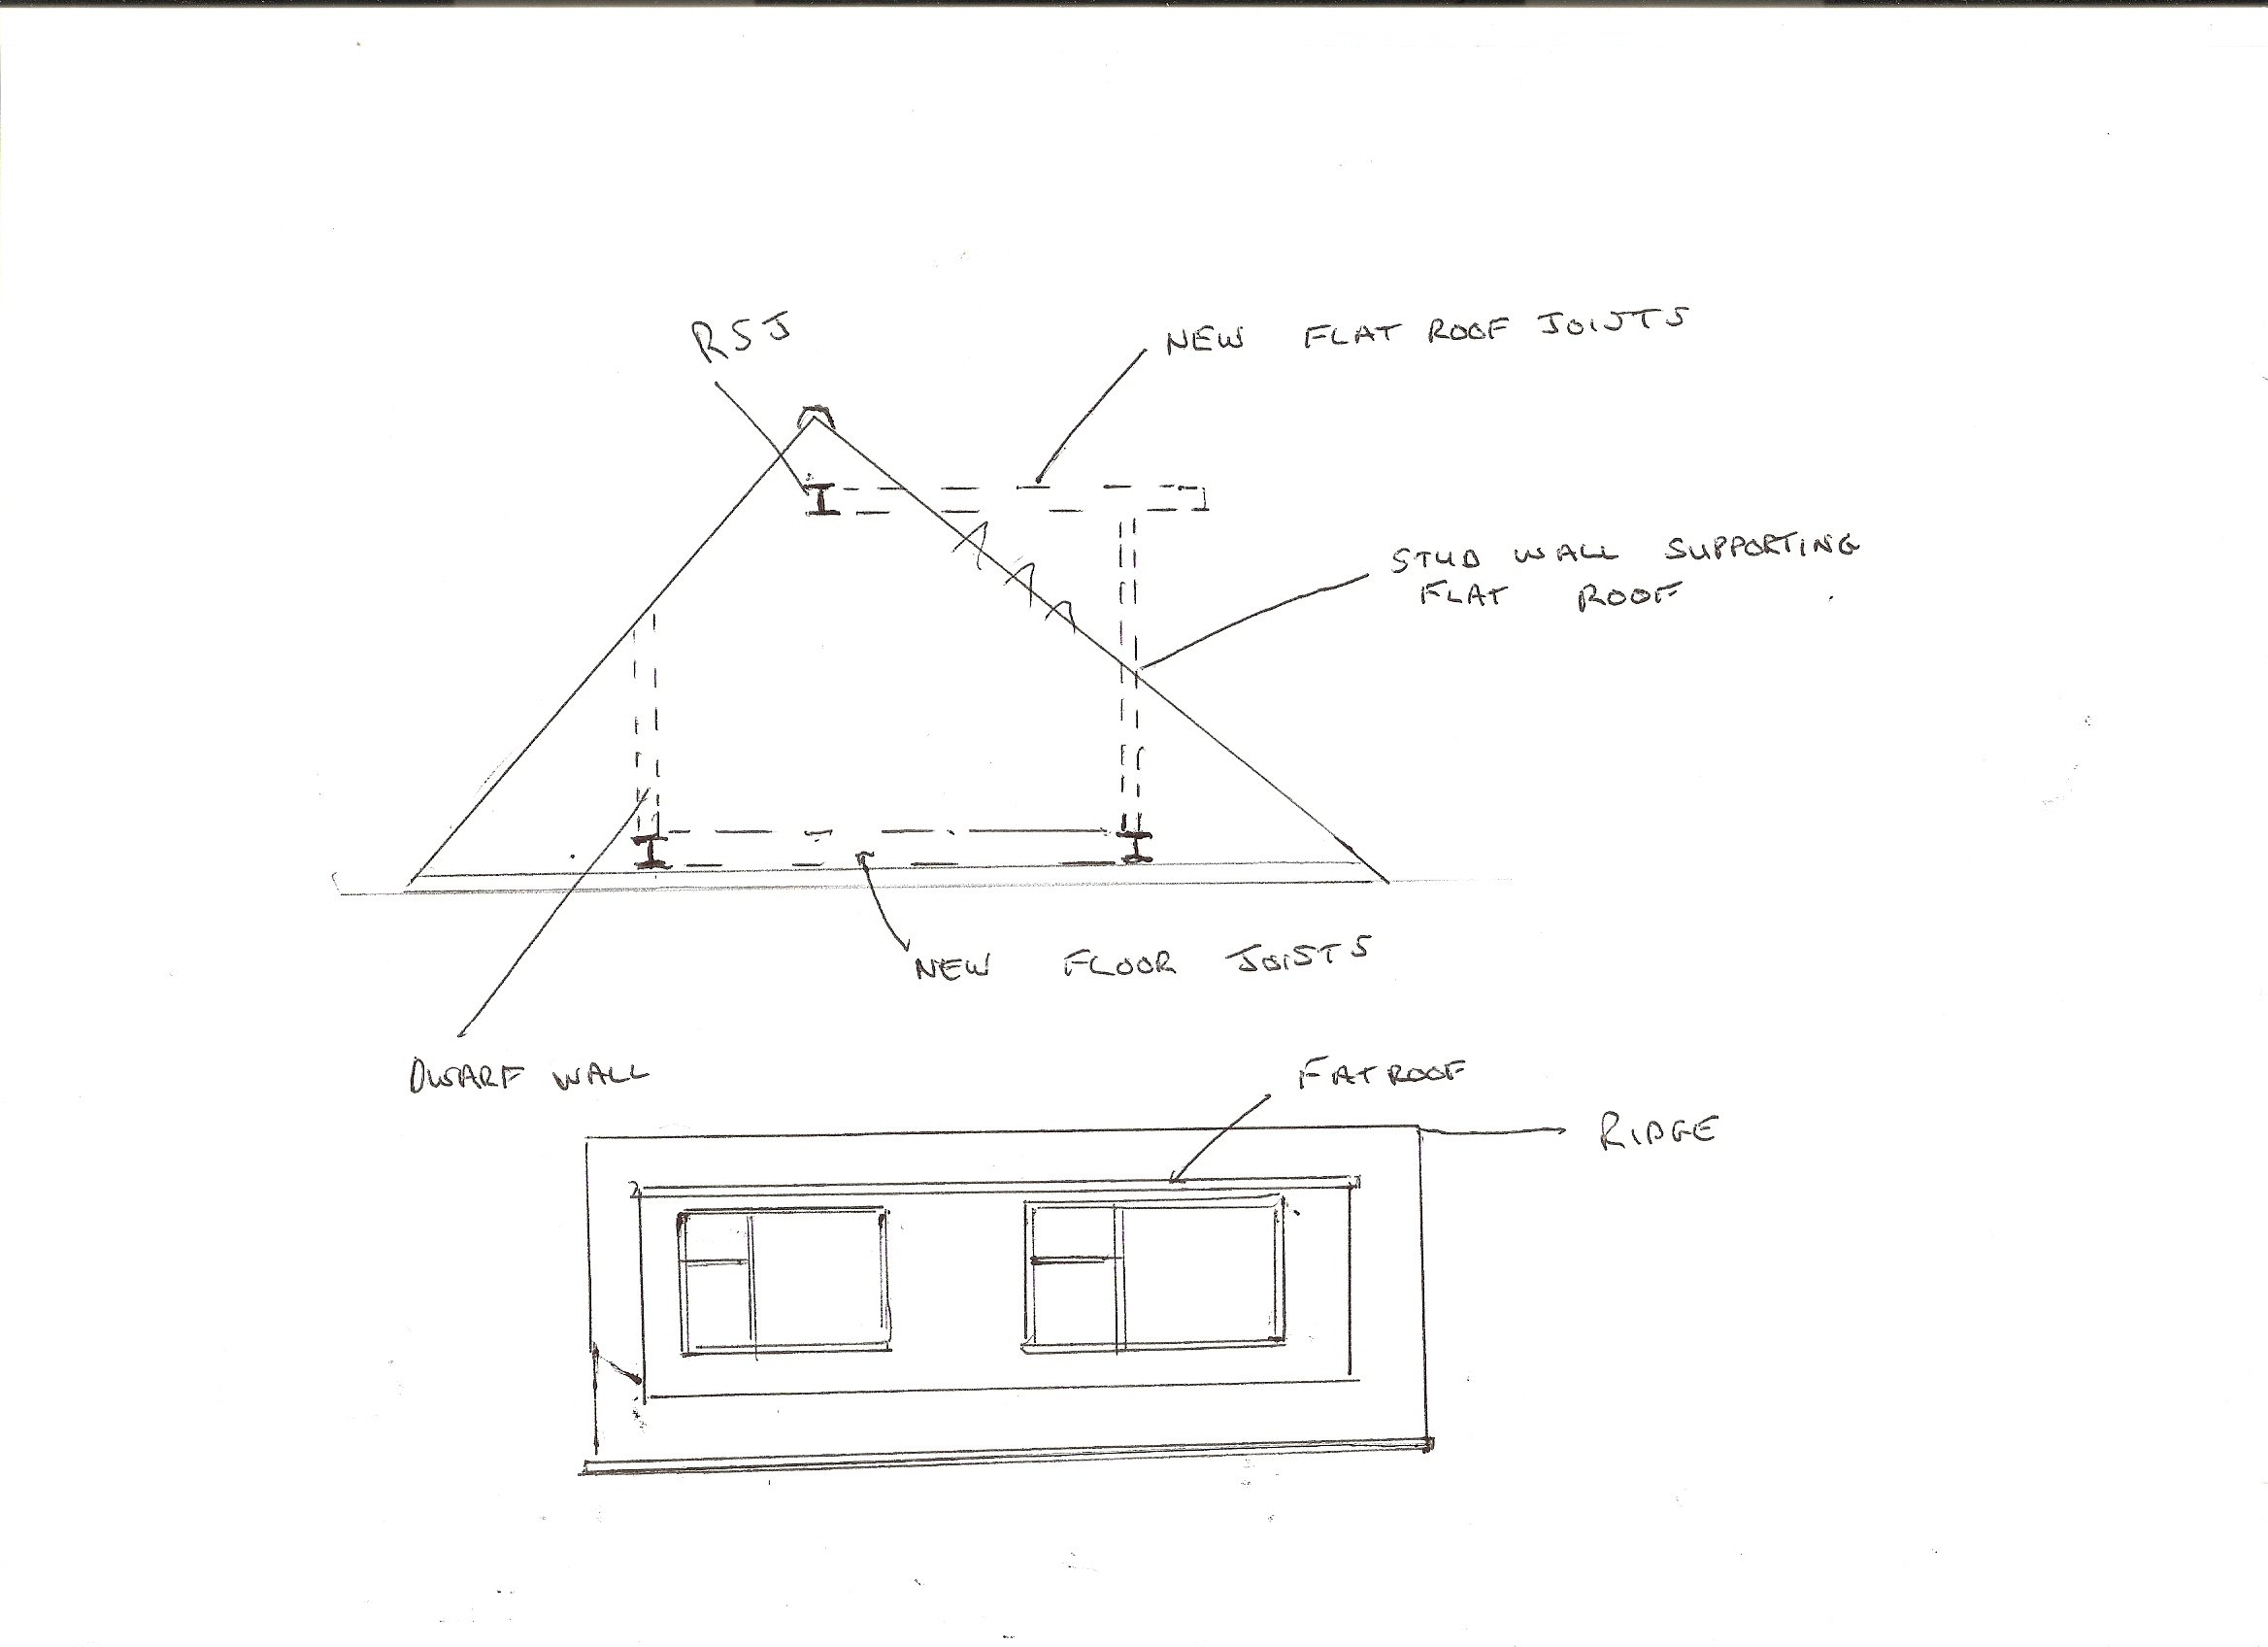 I am doing a loft conversion and need calculations for size of rsj